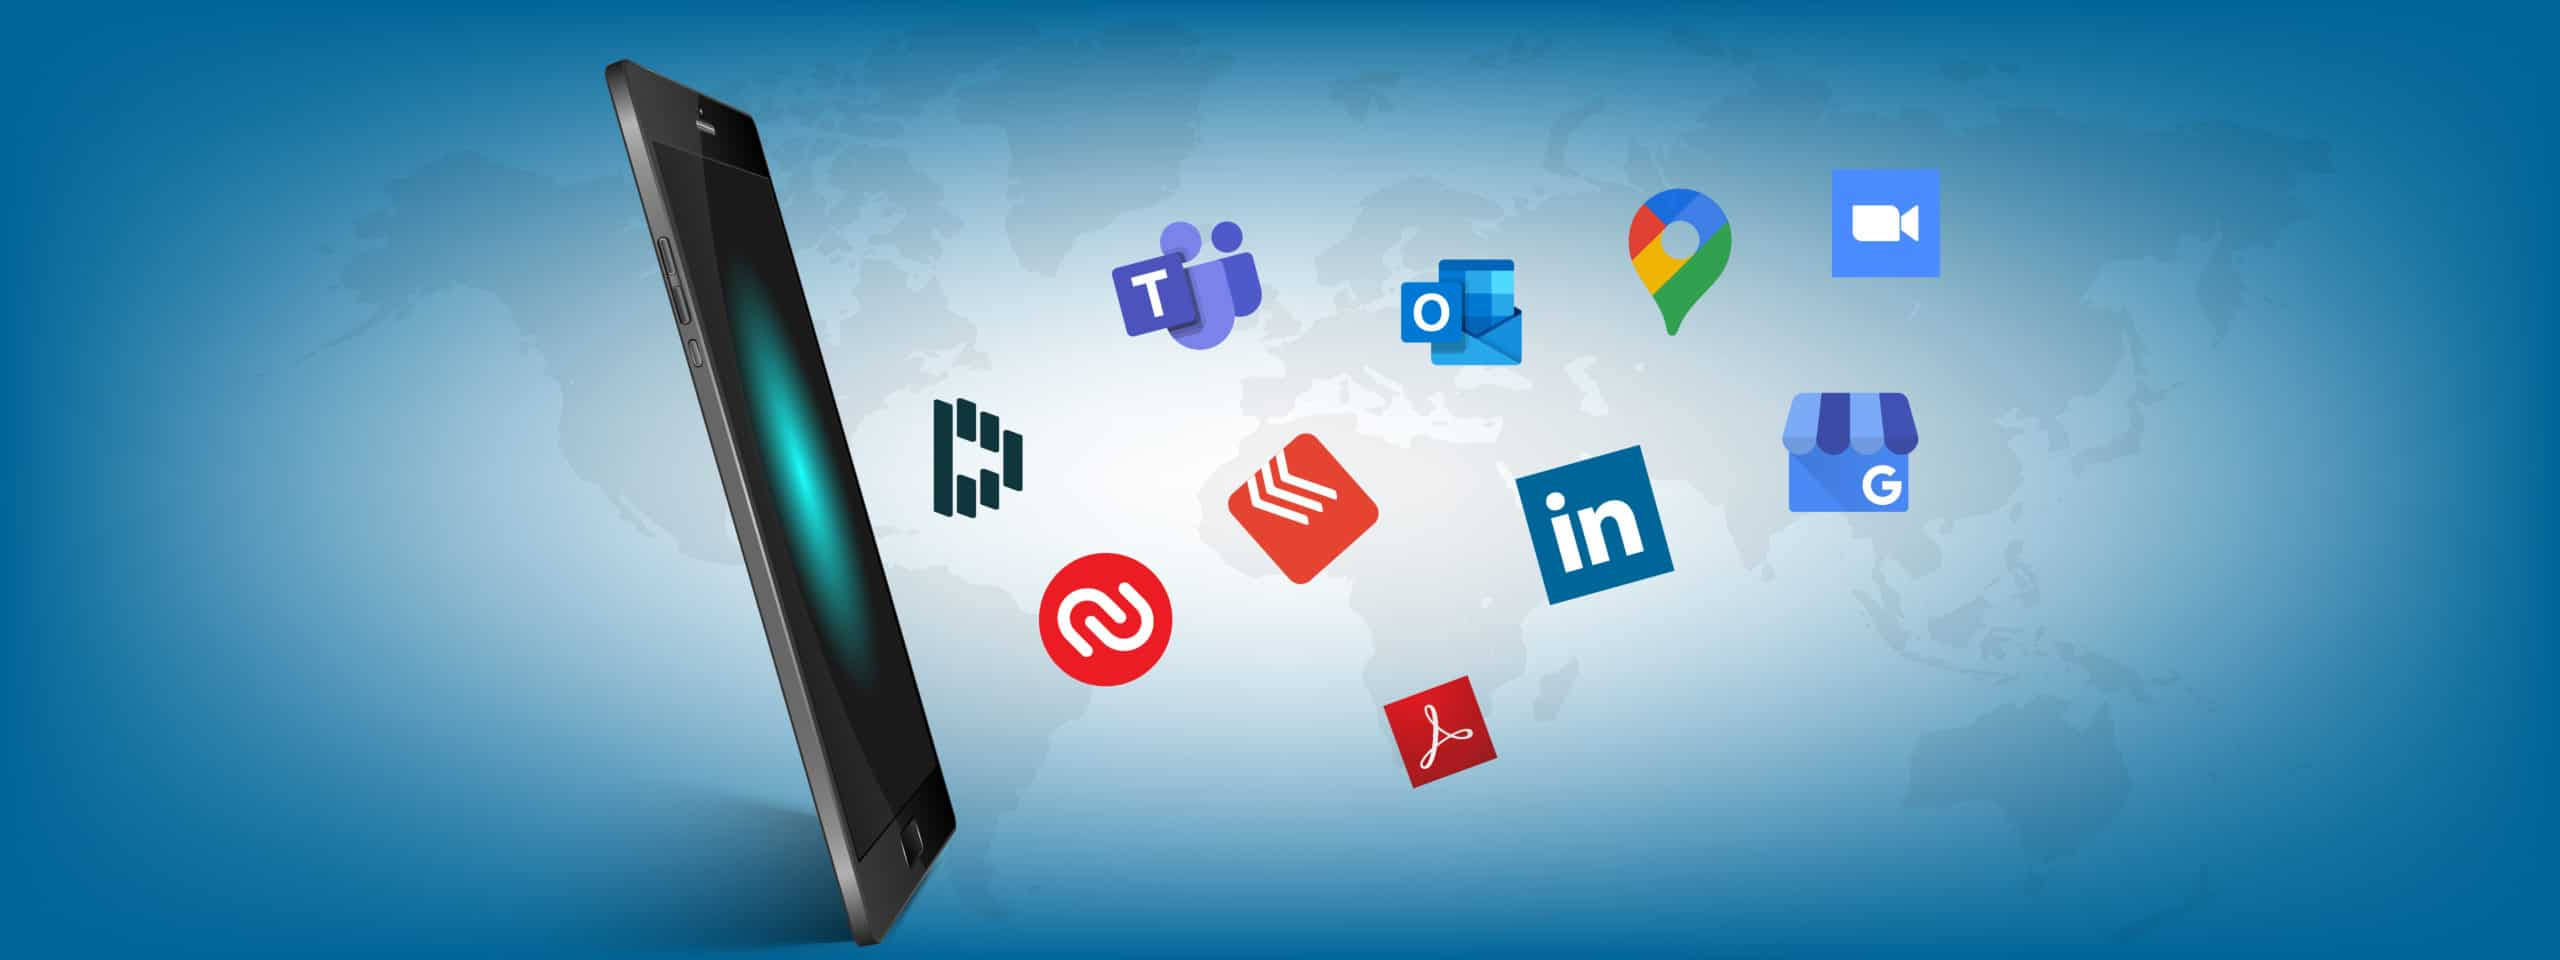 10 best business apps for your smartphone   5 Minute HelpDesk   Computing Australia